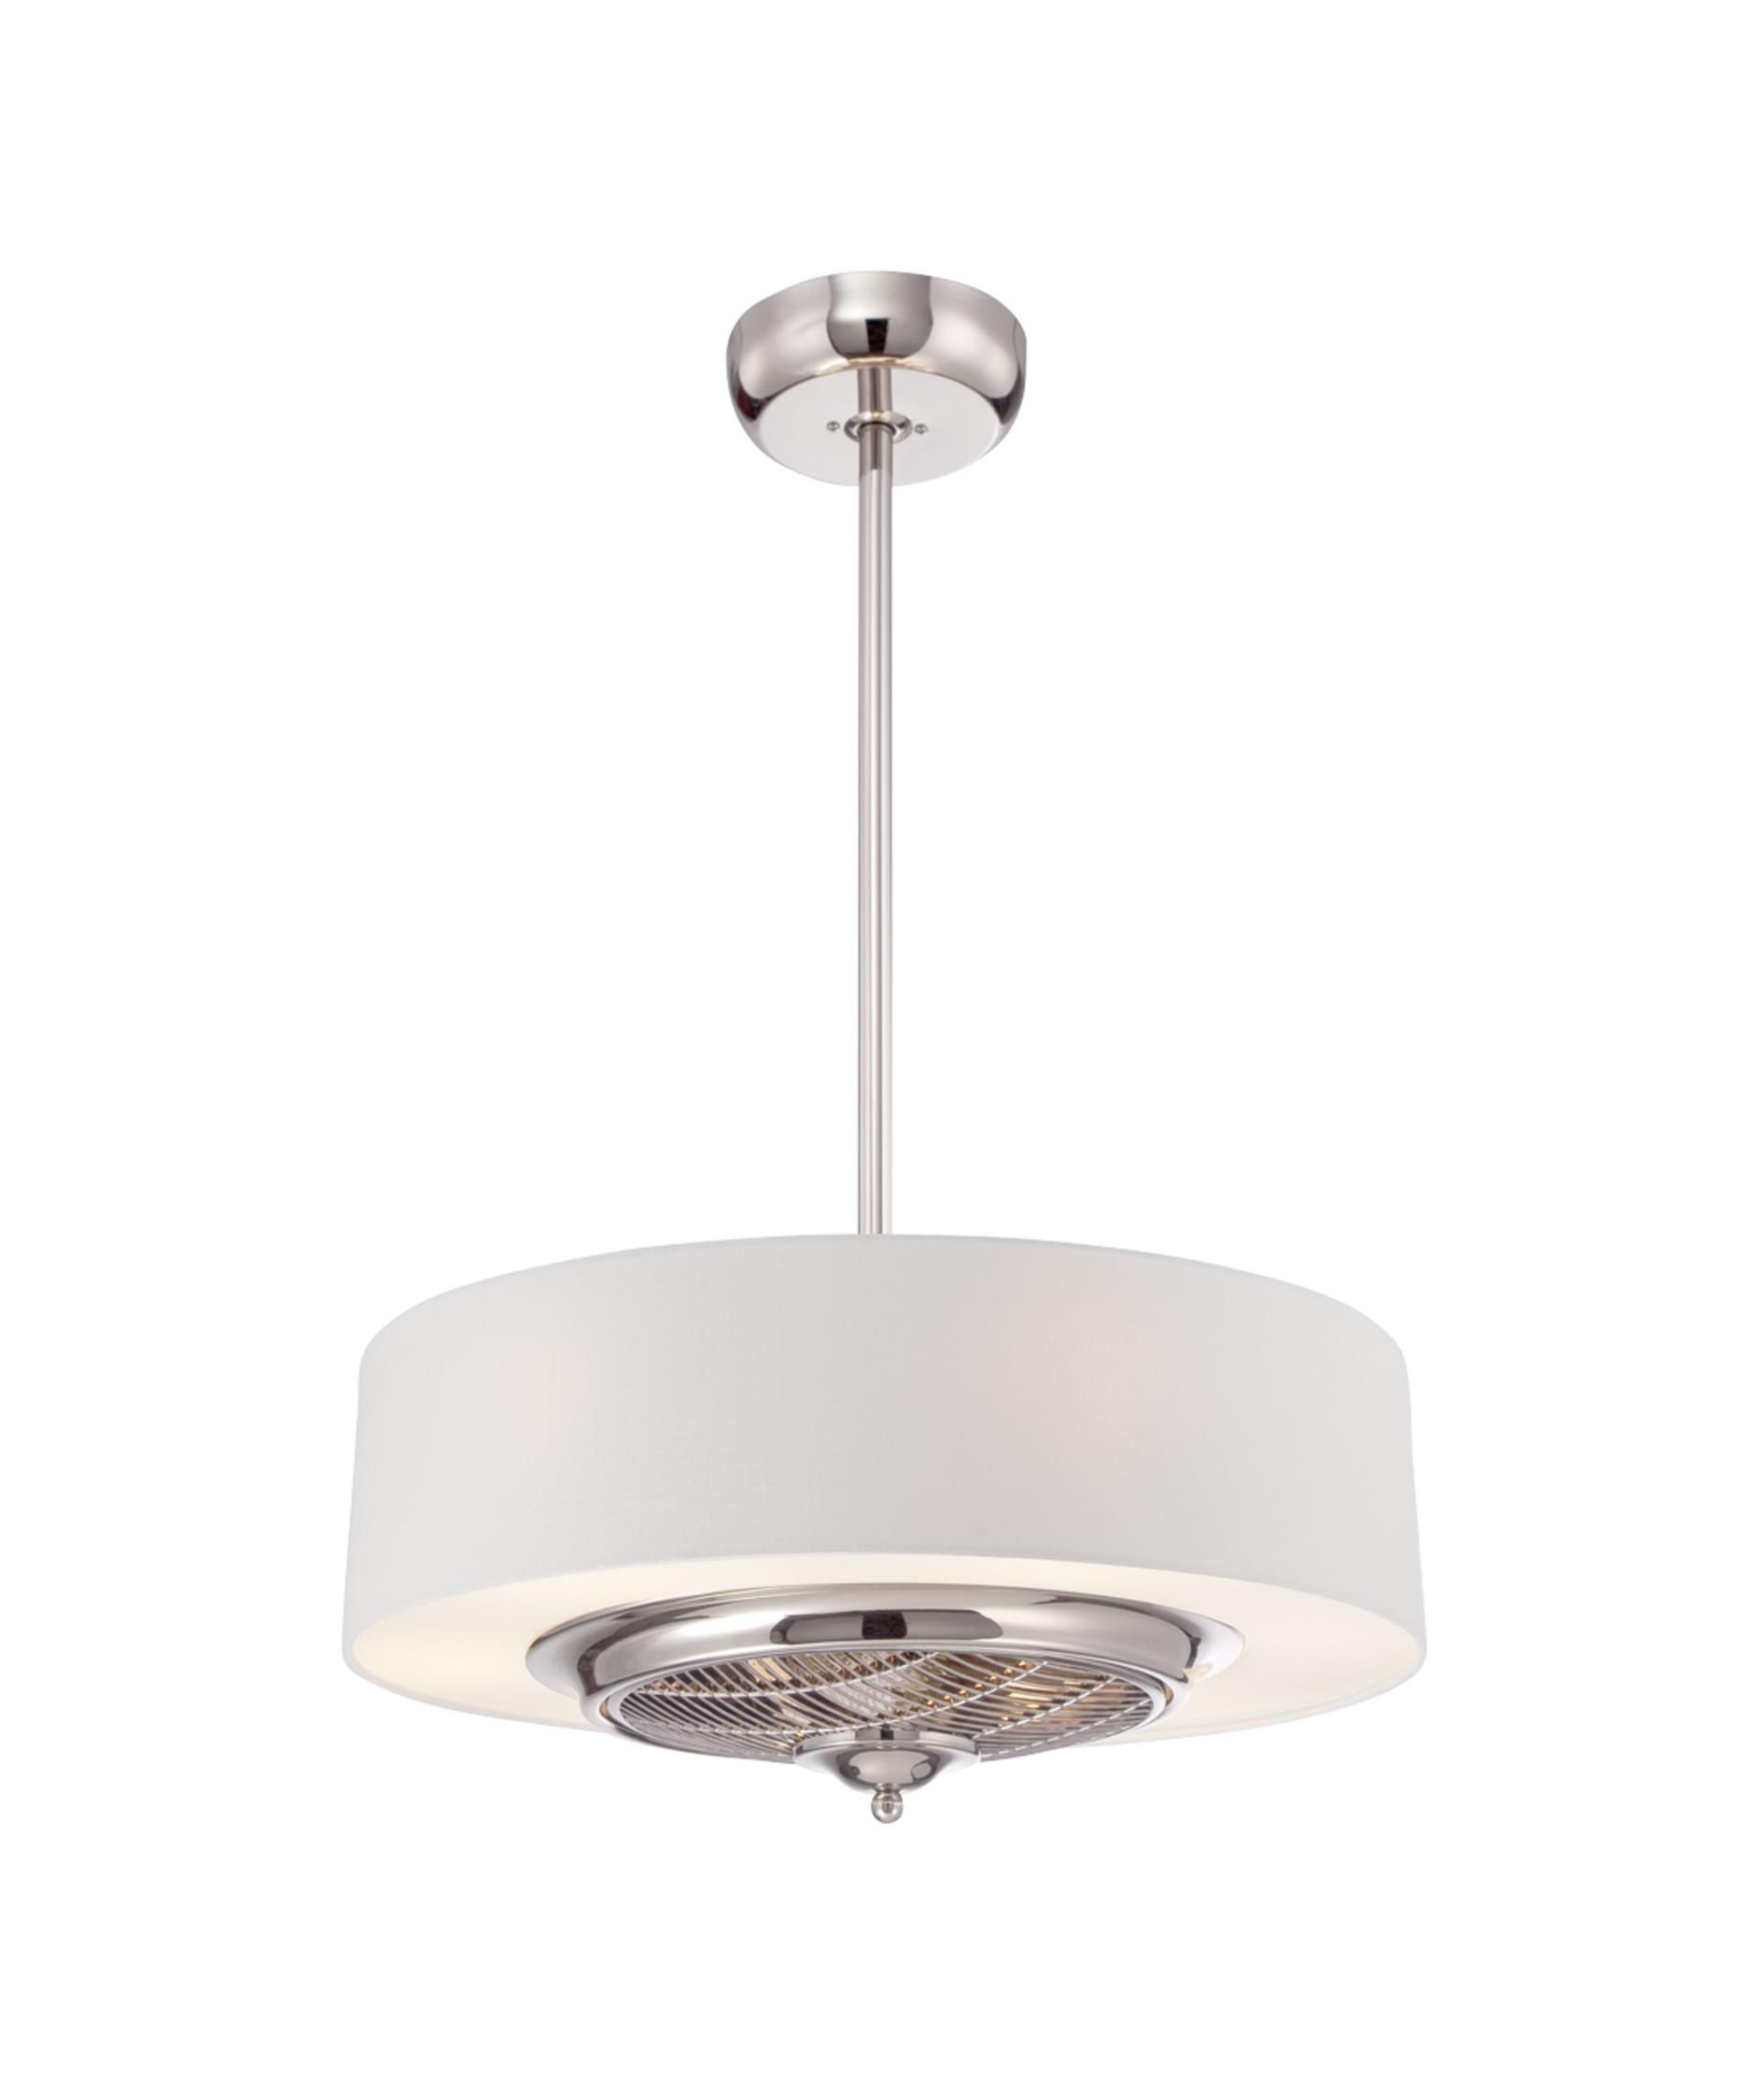 Chandelier Ceiling Fan With Remote